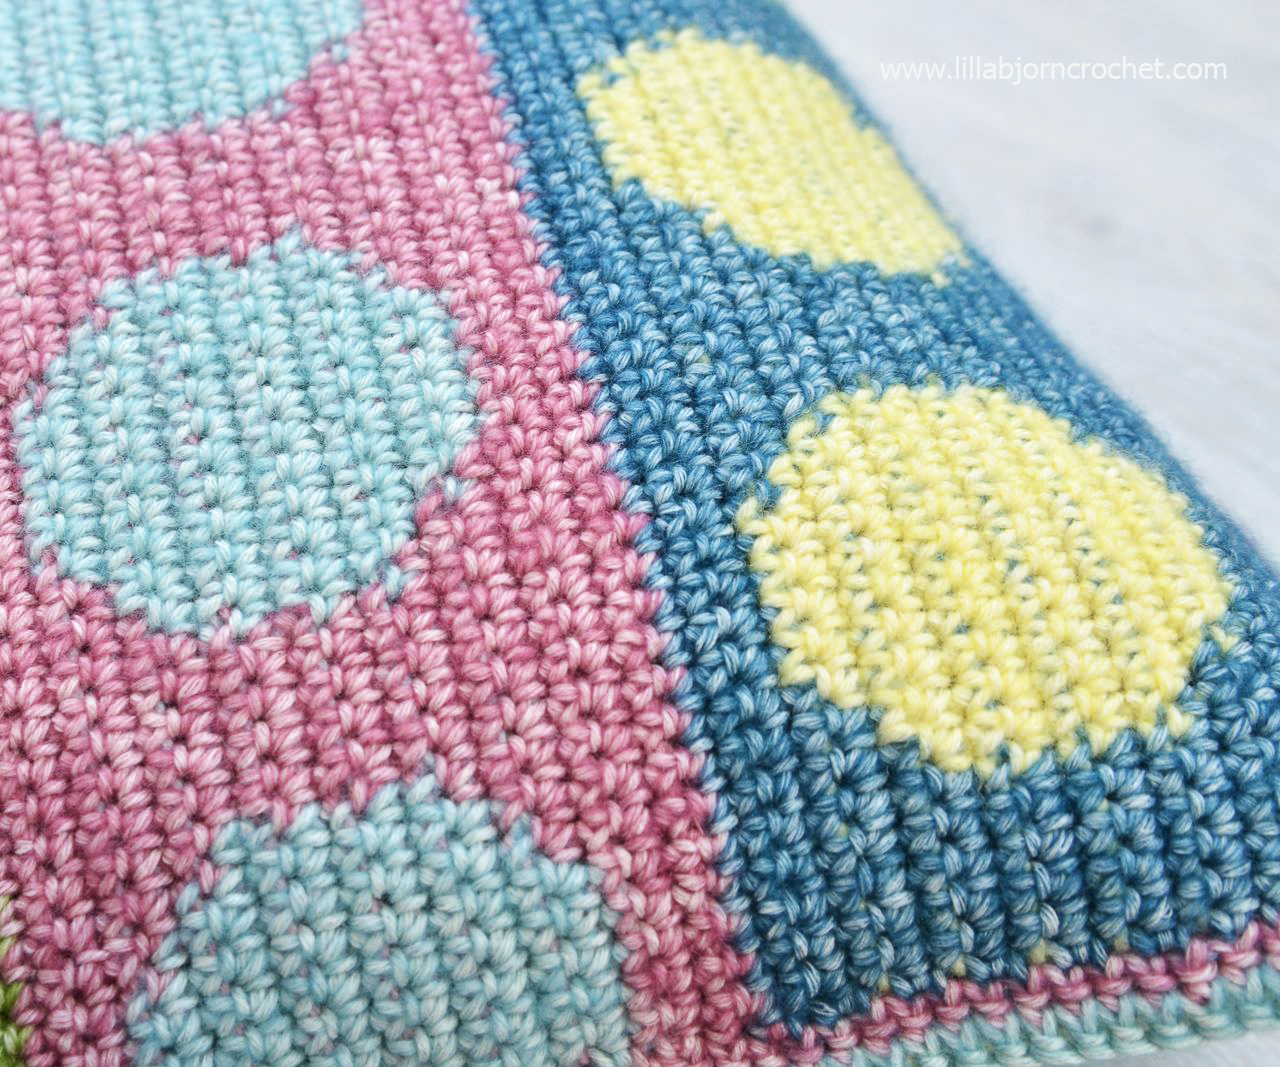 Crochet tapestry pillow cover with colorful circles. Free pattern by Lilla Bjorn Crochet